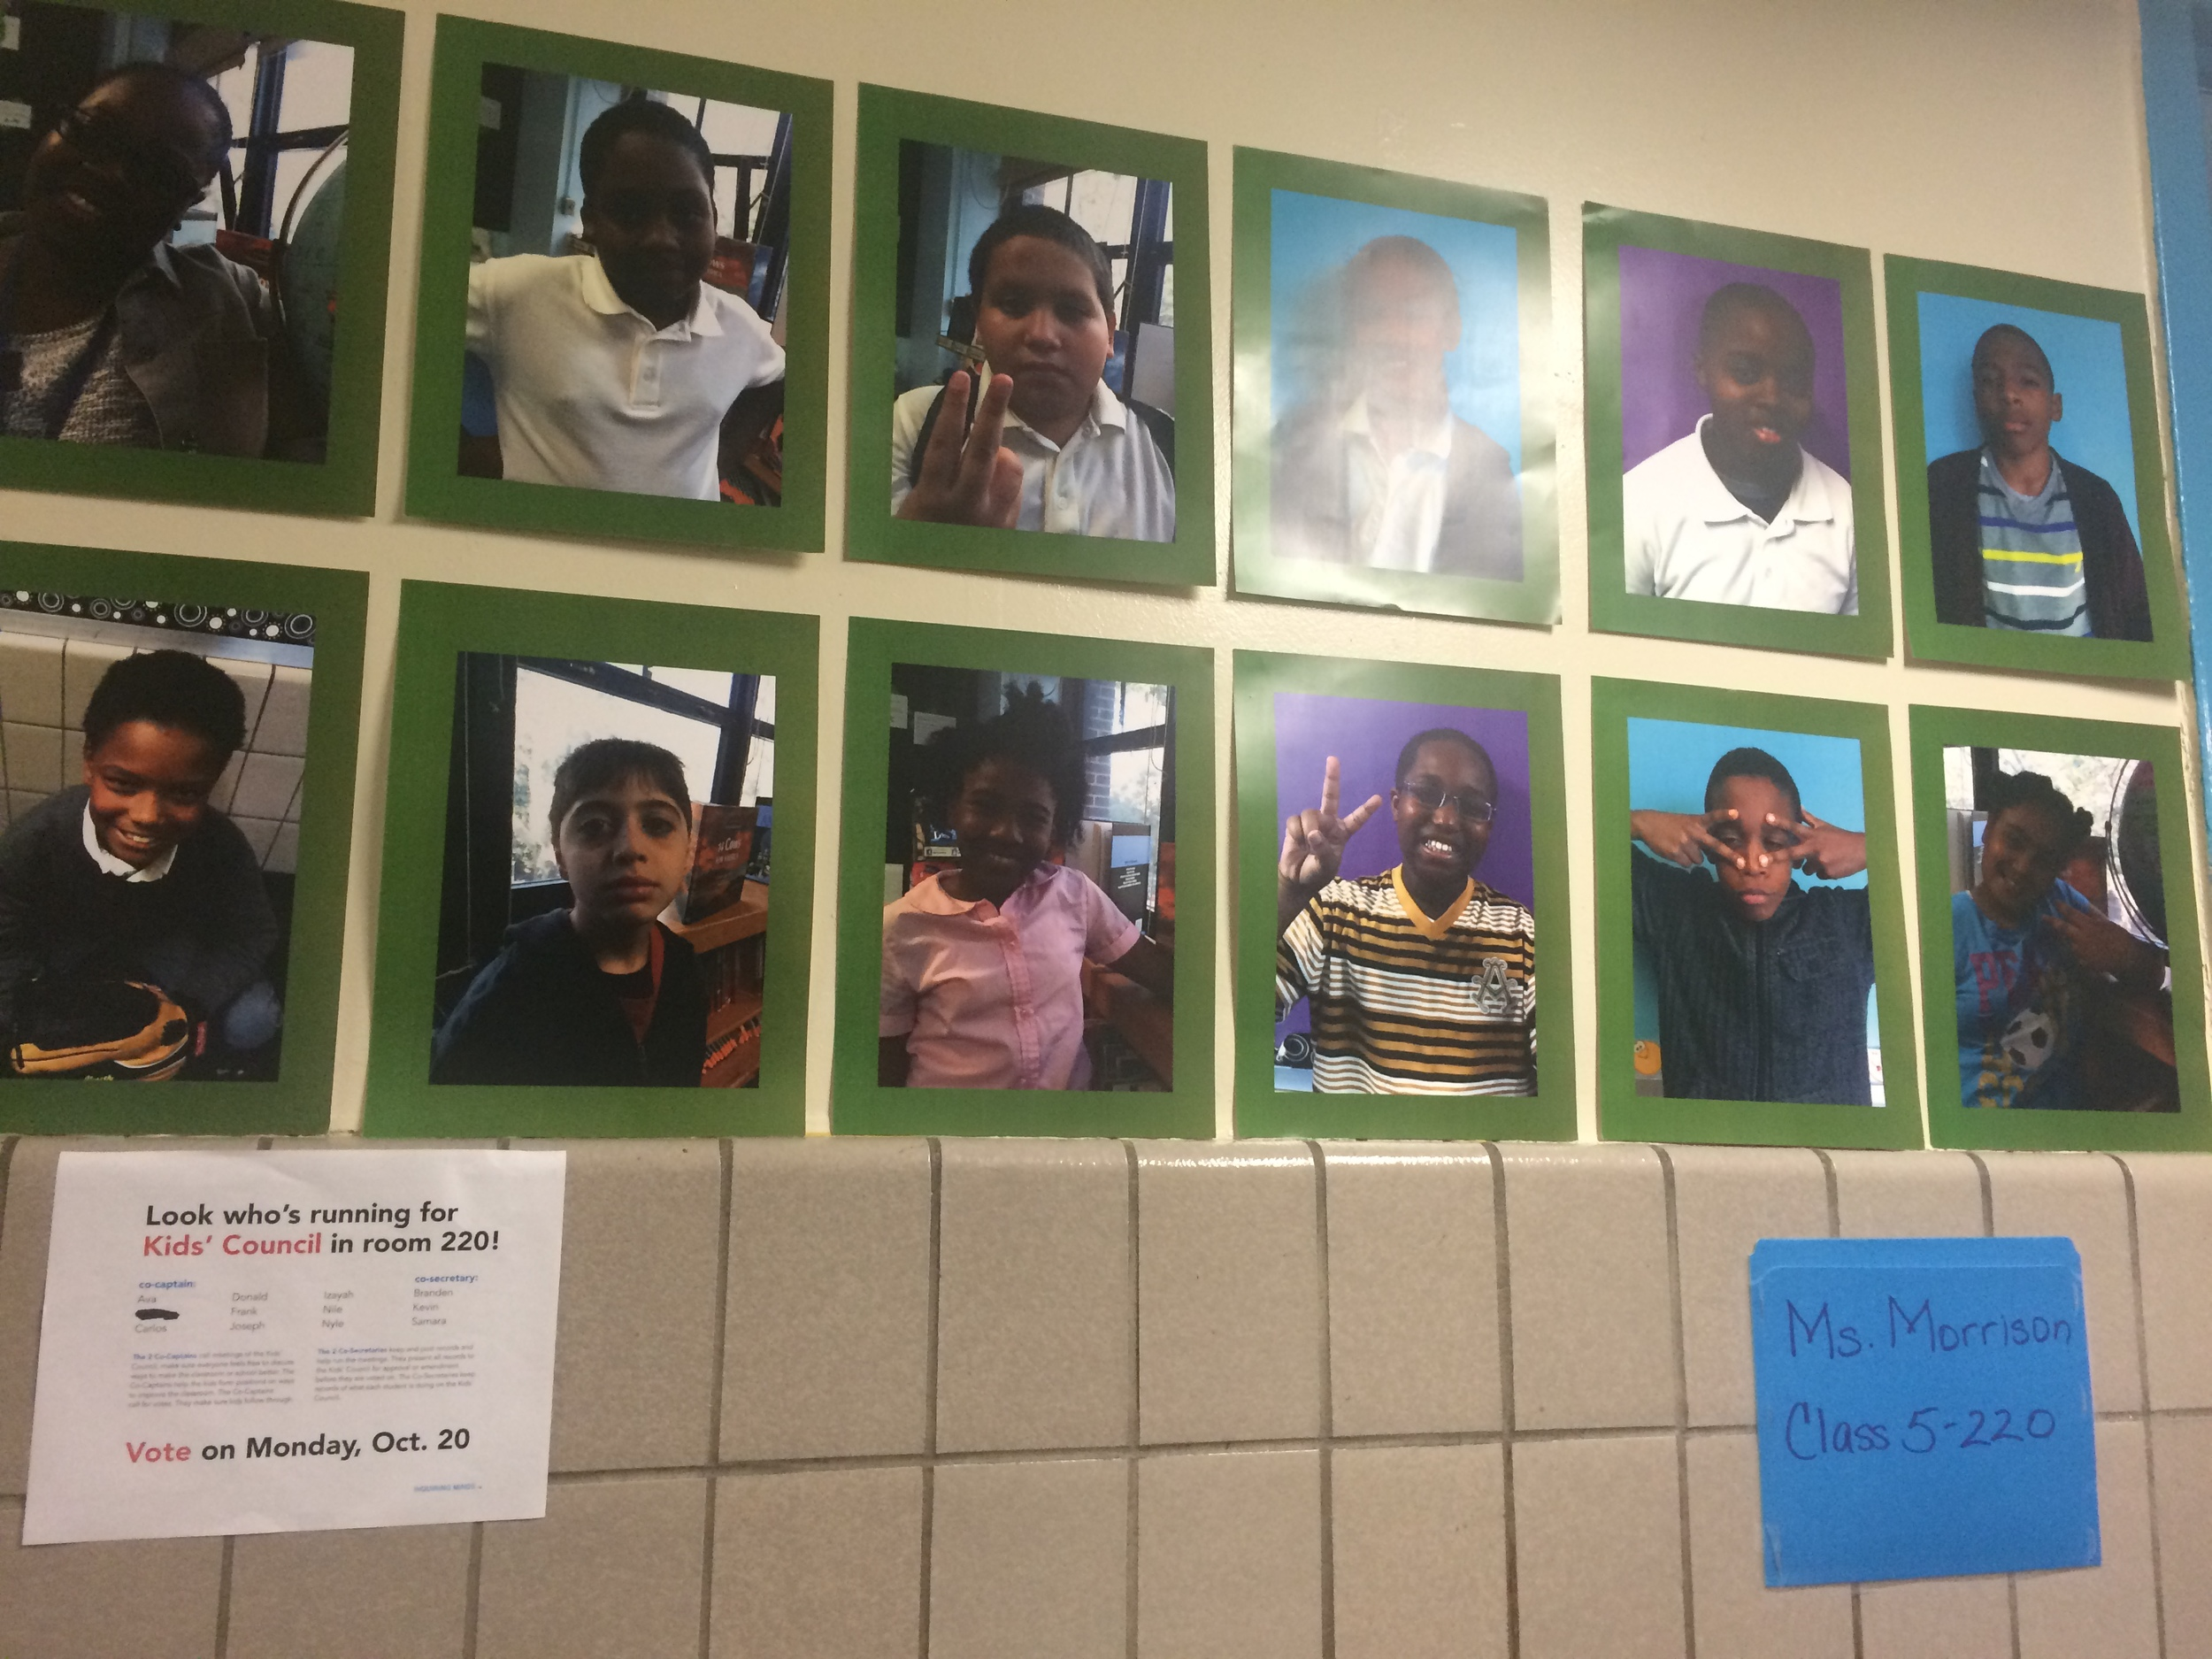 The posting of Kids' Council candidates, in the hall, right outside room 220.